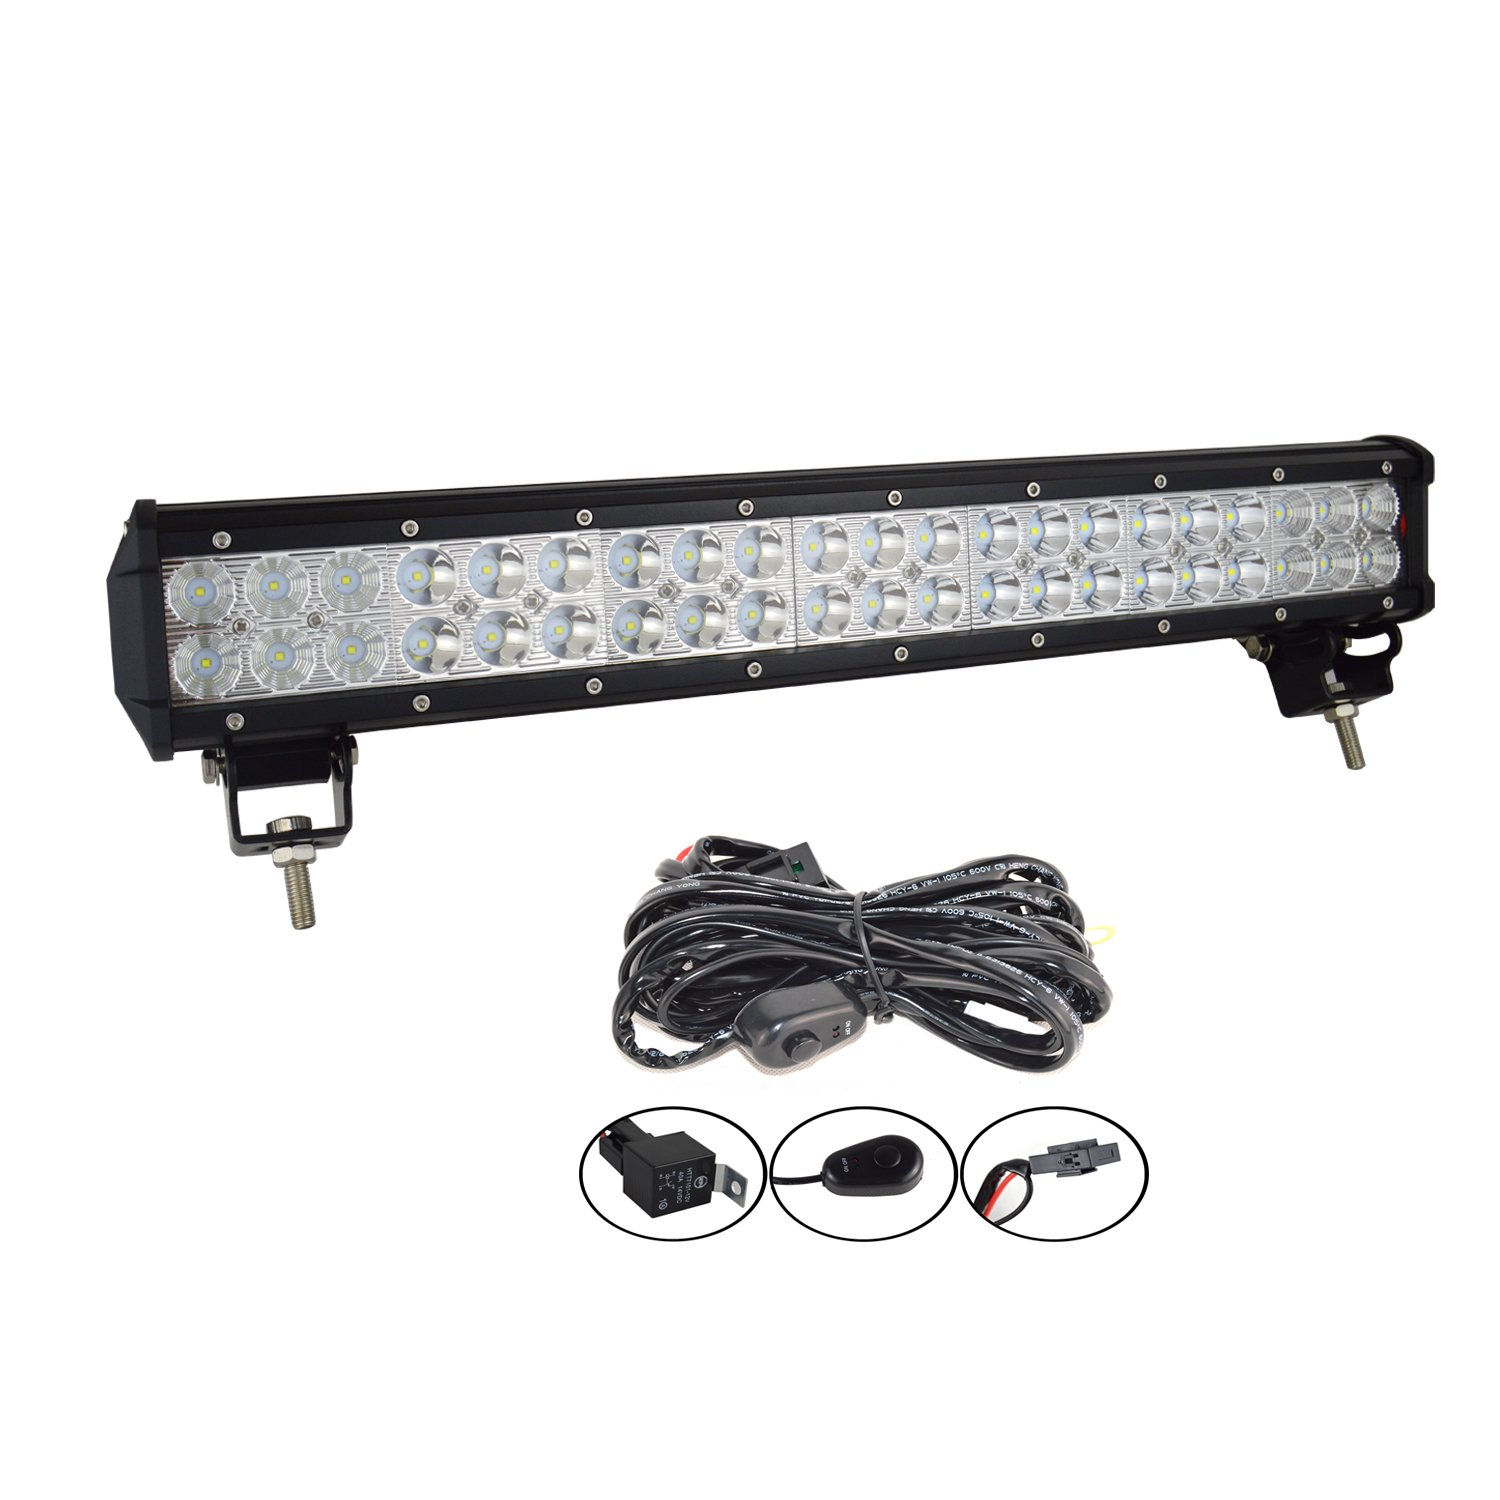 AUXTINGS 32 inch 180W Led Light Bar Spot Flood Combo Beam Offroad LED Work Light With Wiring Harness Kit for Off-road Vehicles 4x4 Atvs Utvs